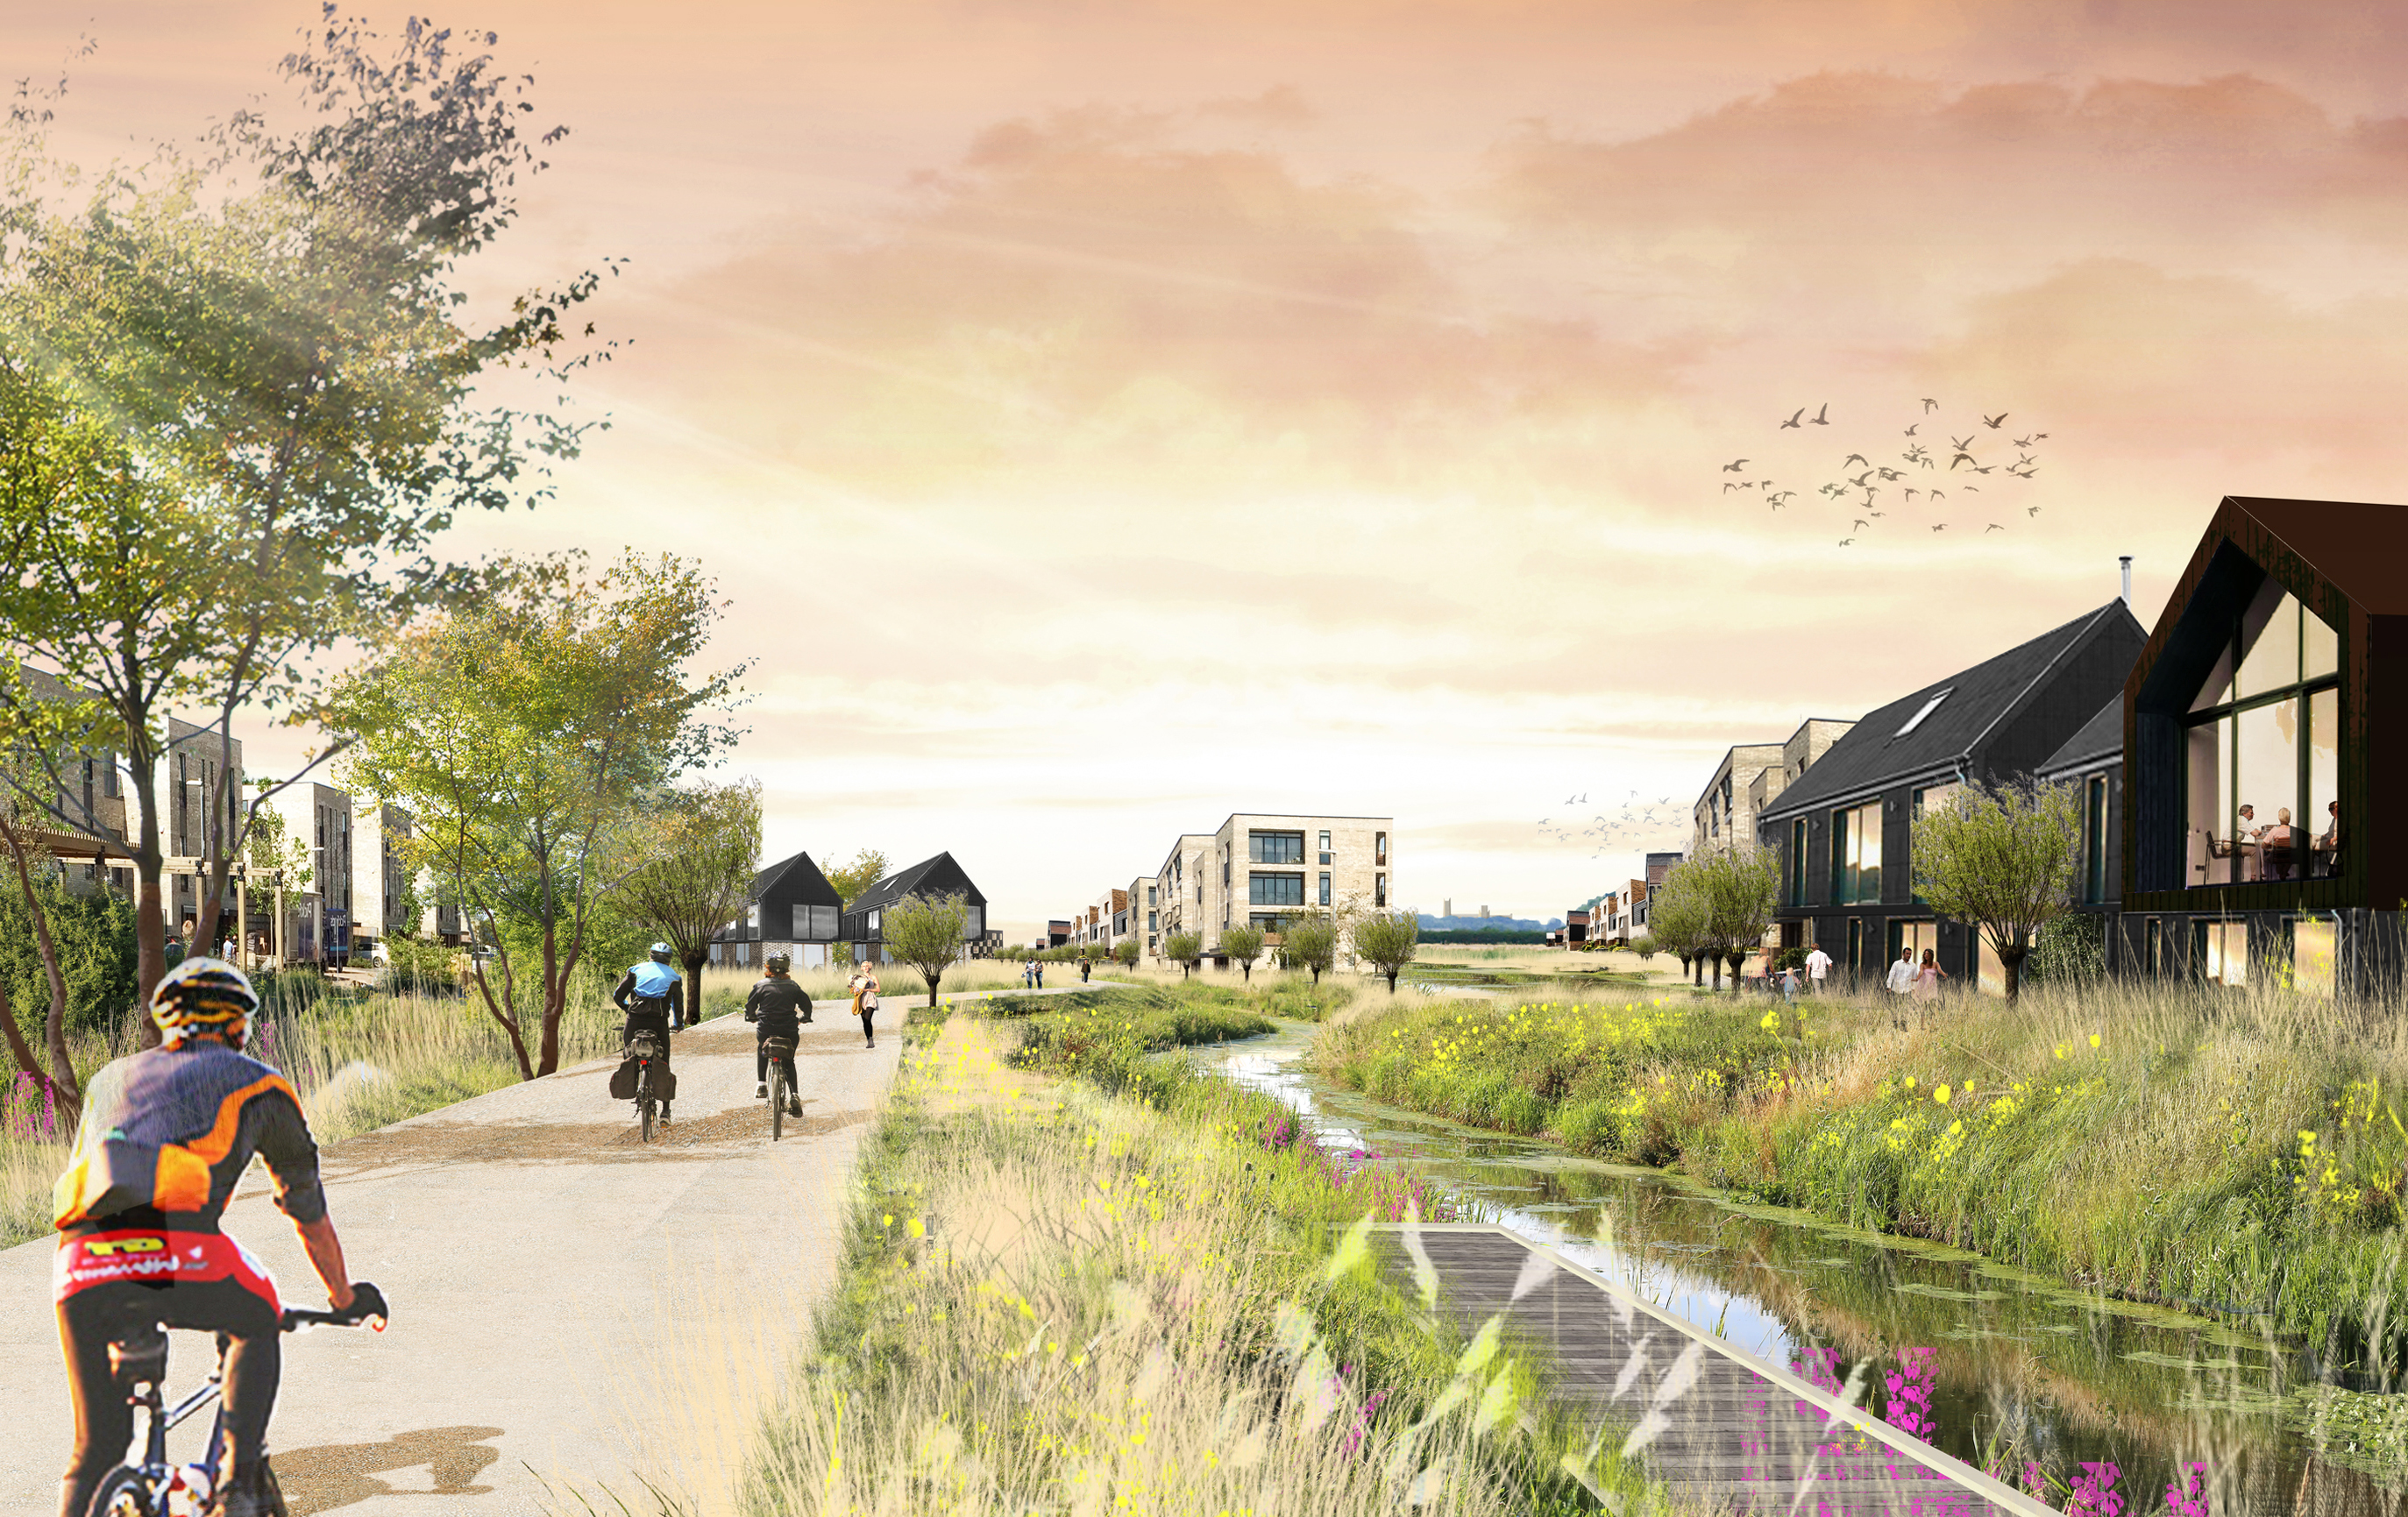 LDA Design's car-free vision for a new town at Waterbeach reimagines what residential streets can offer. It is a first for UK housing at scale.